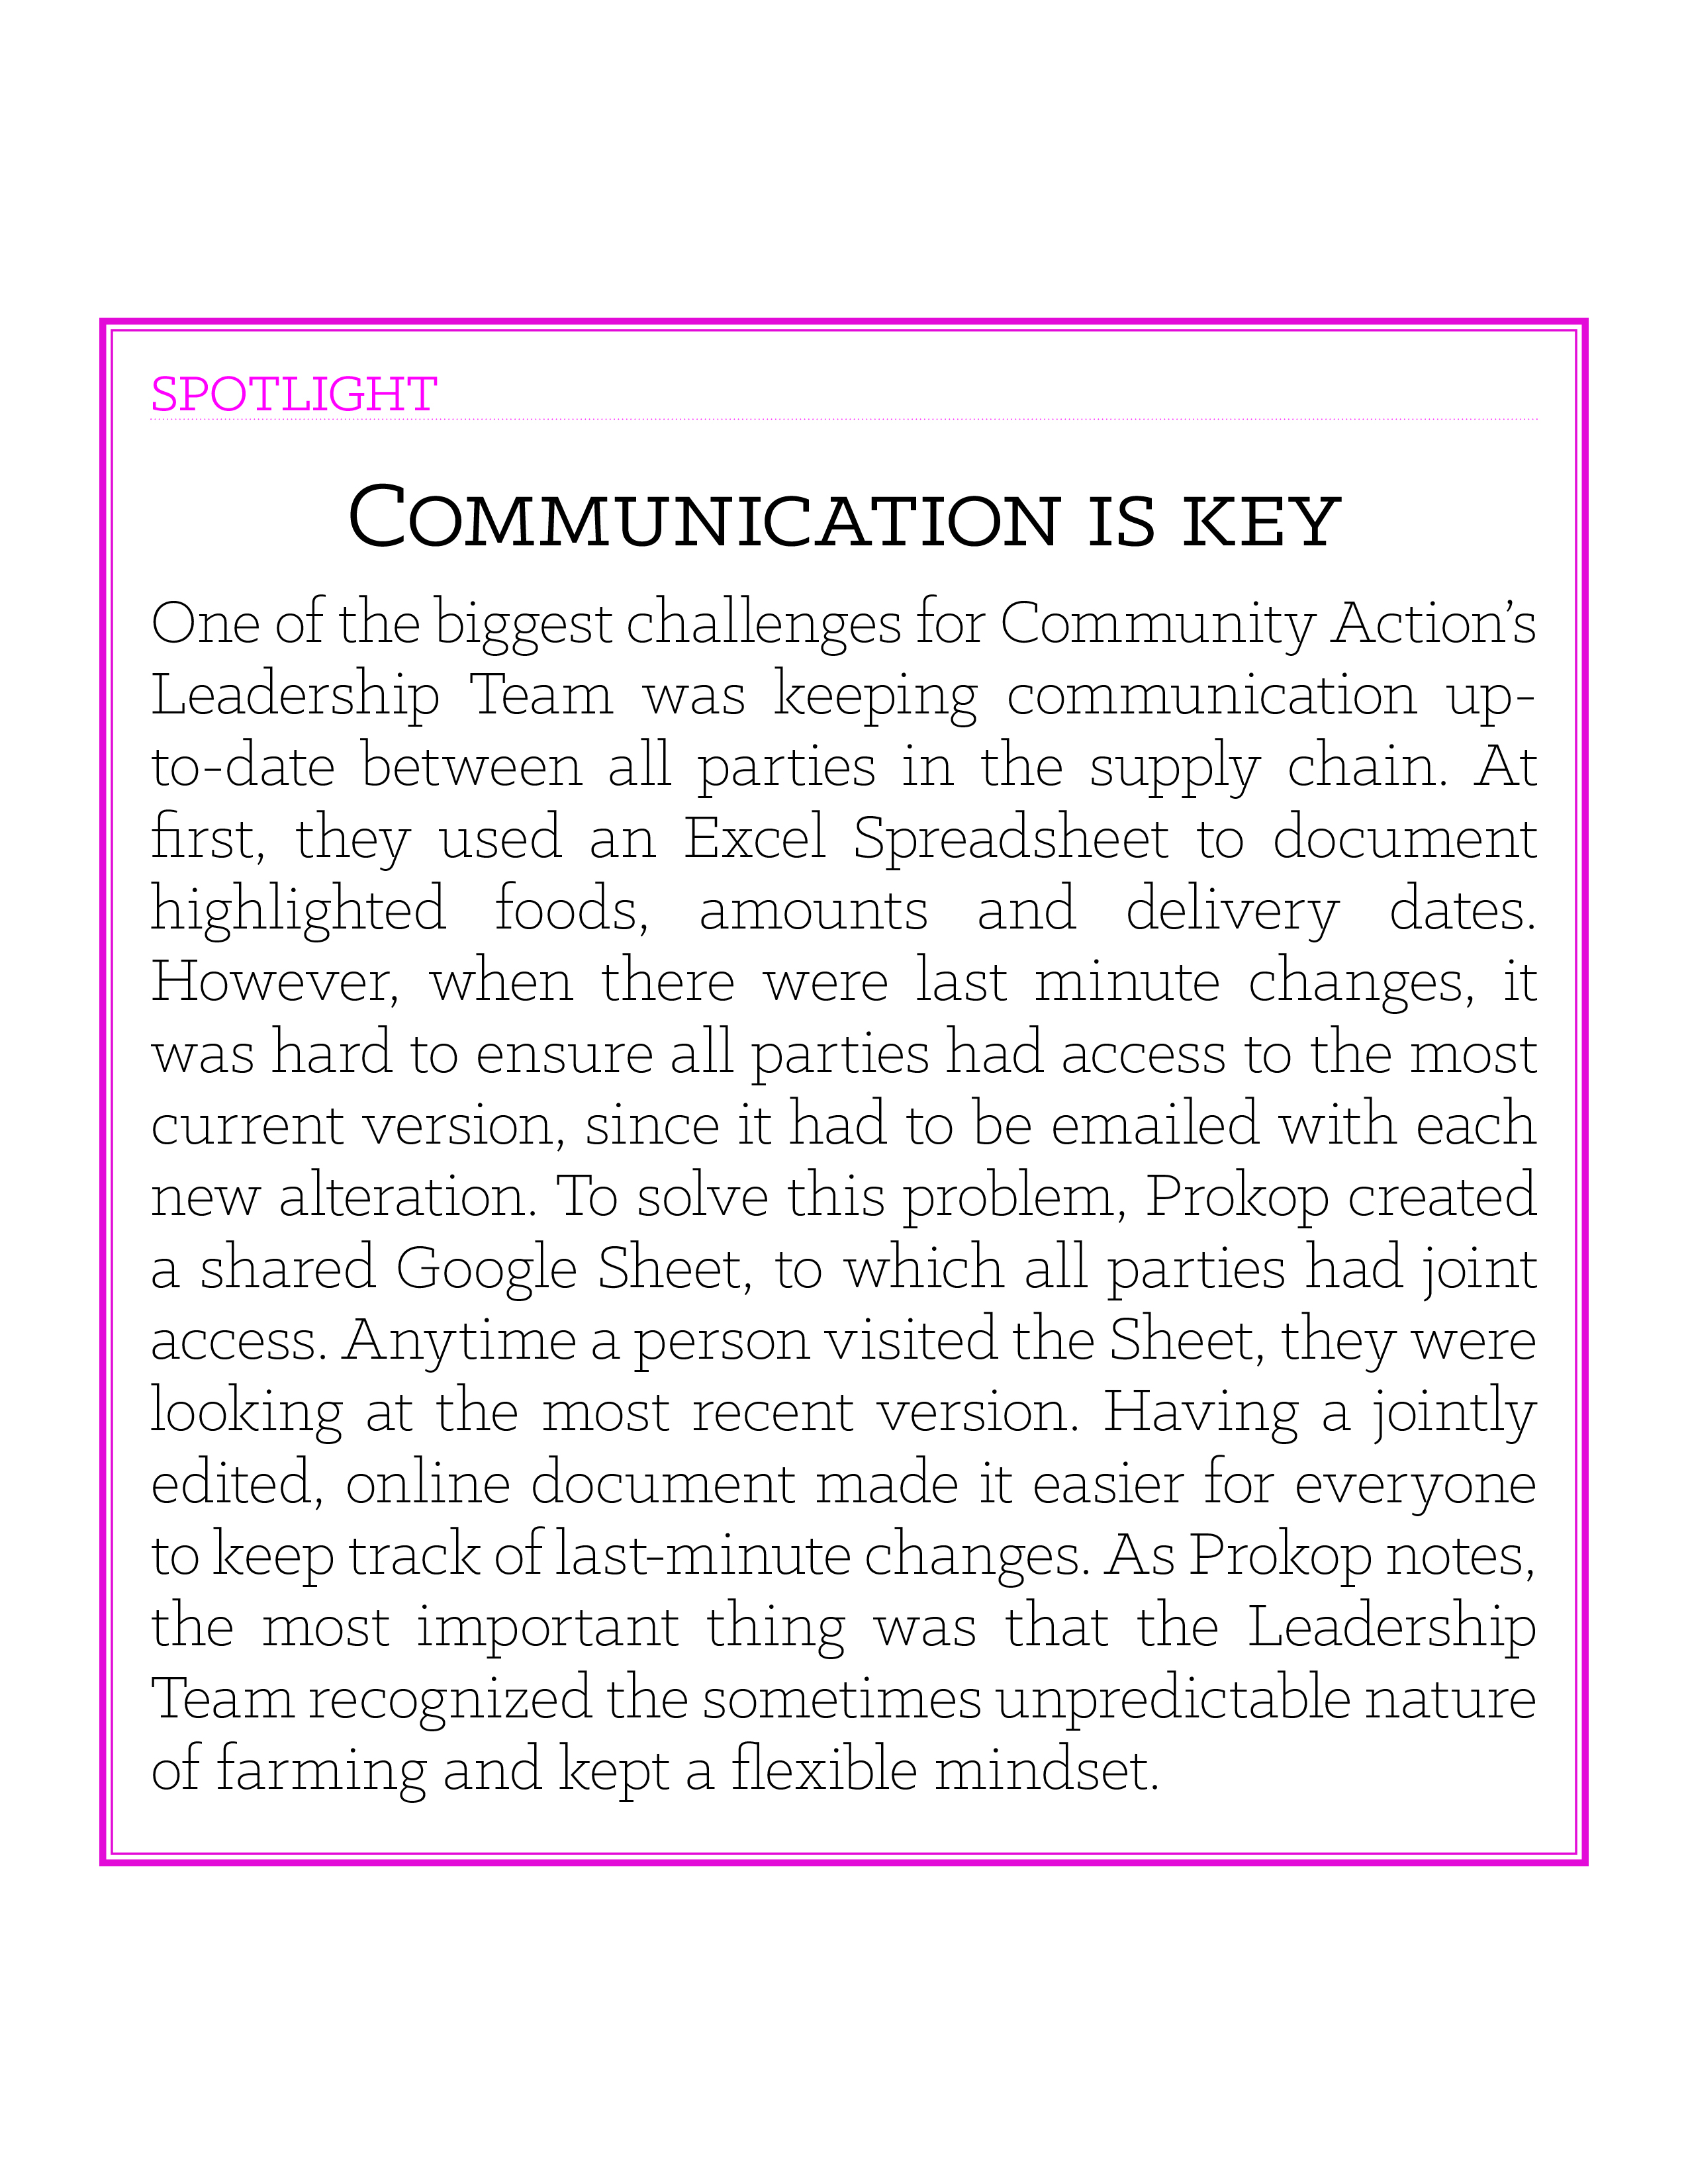 Spotlight box: Communication is key